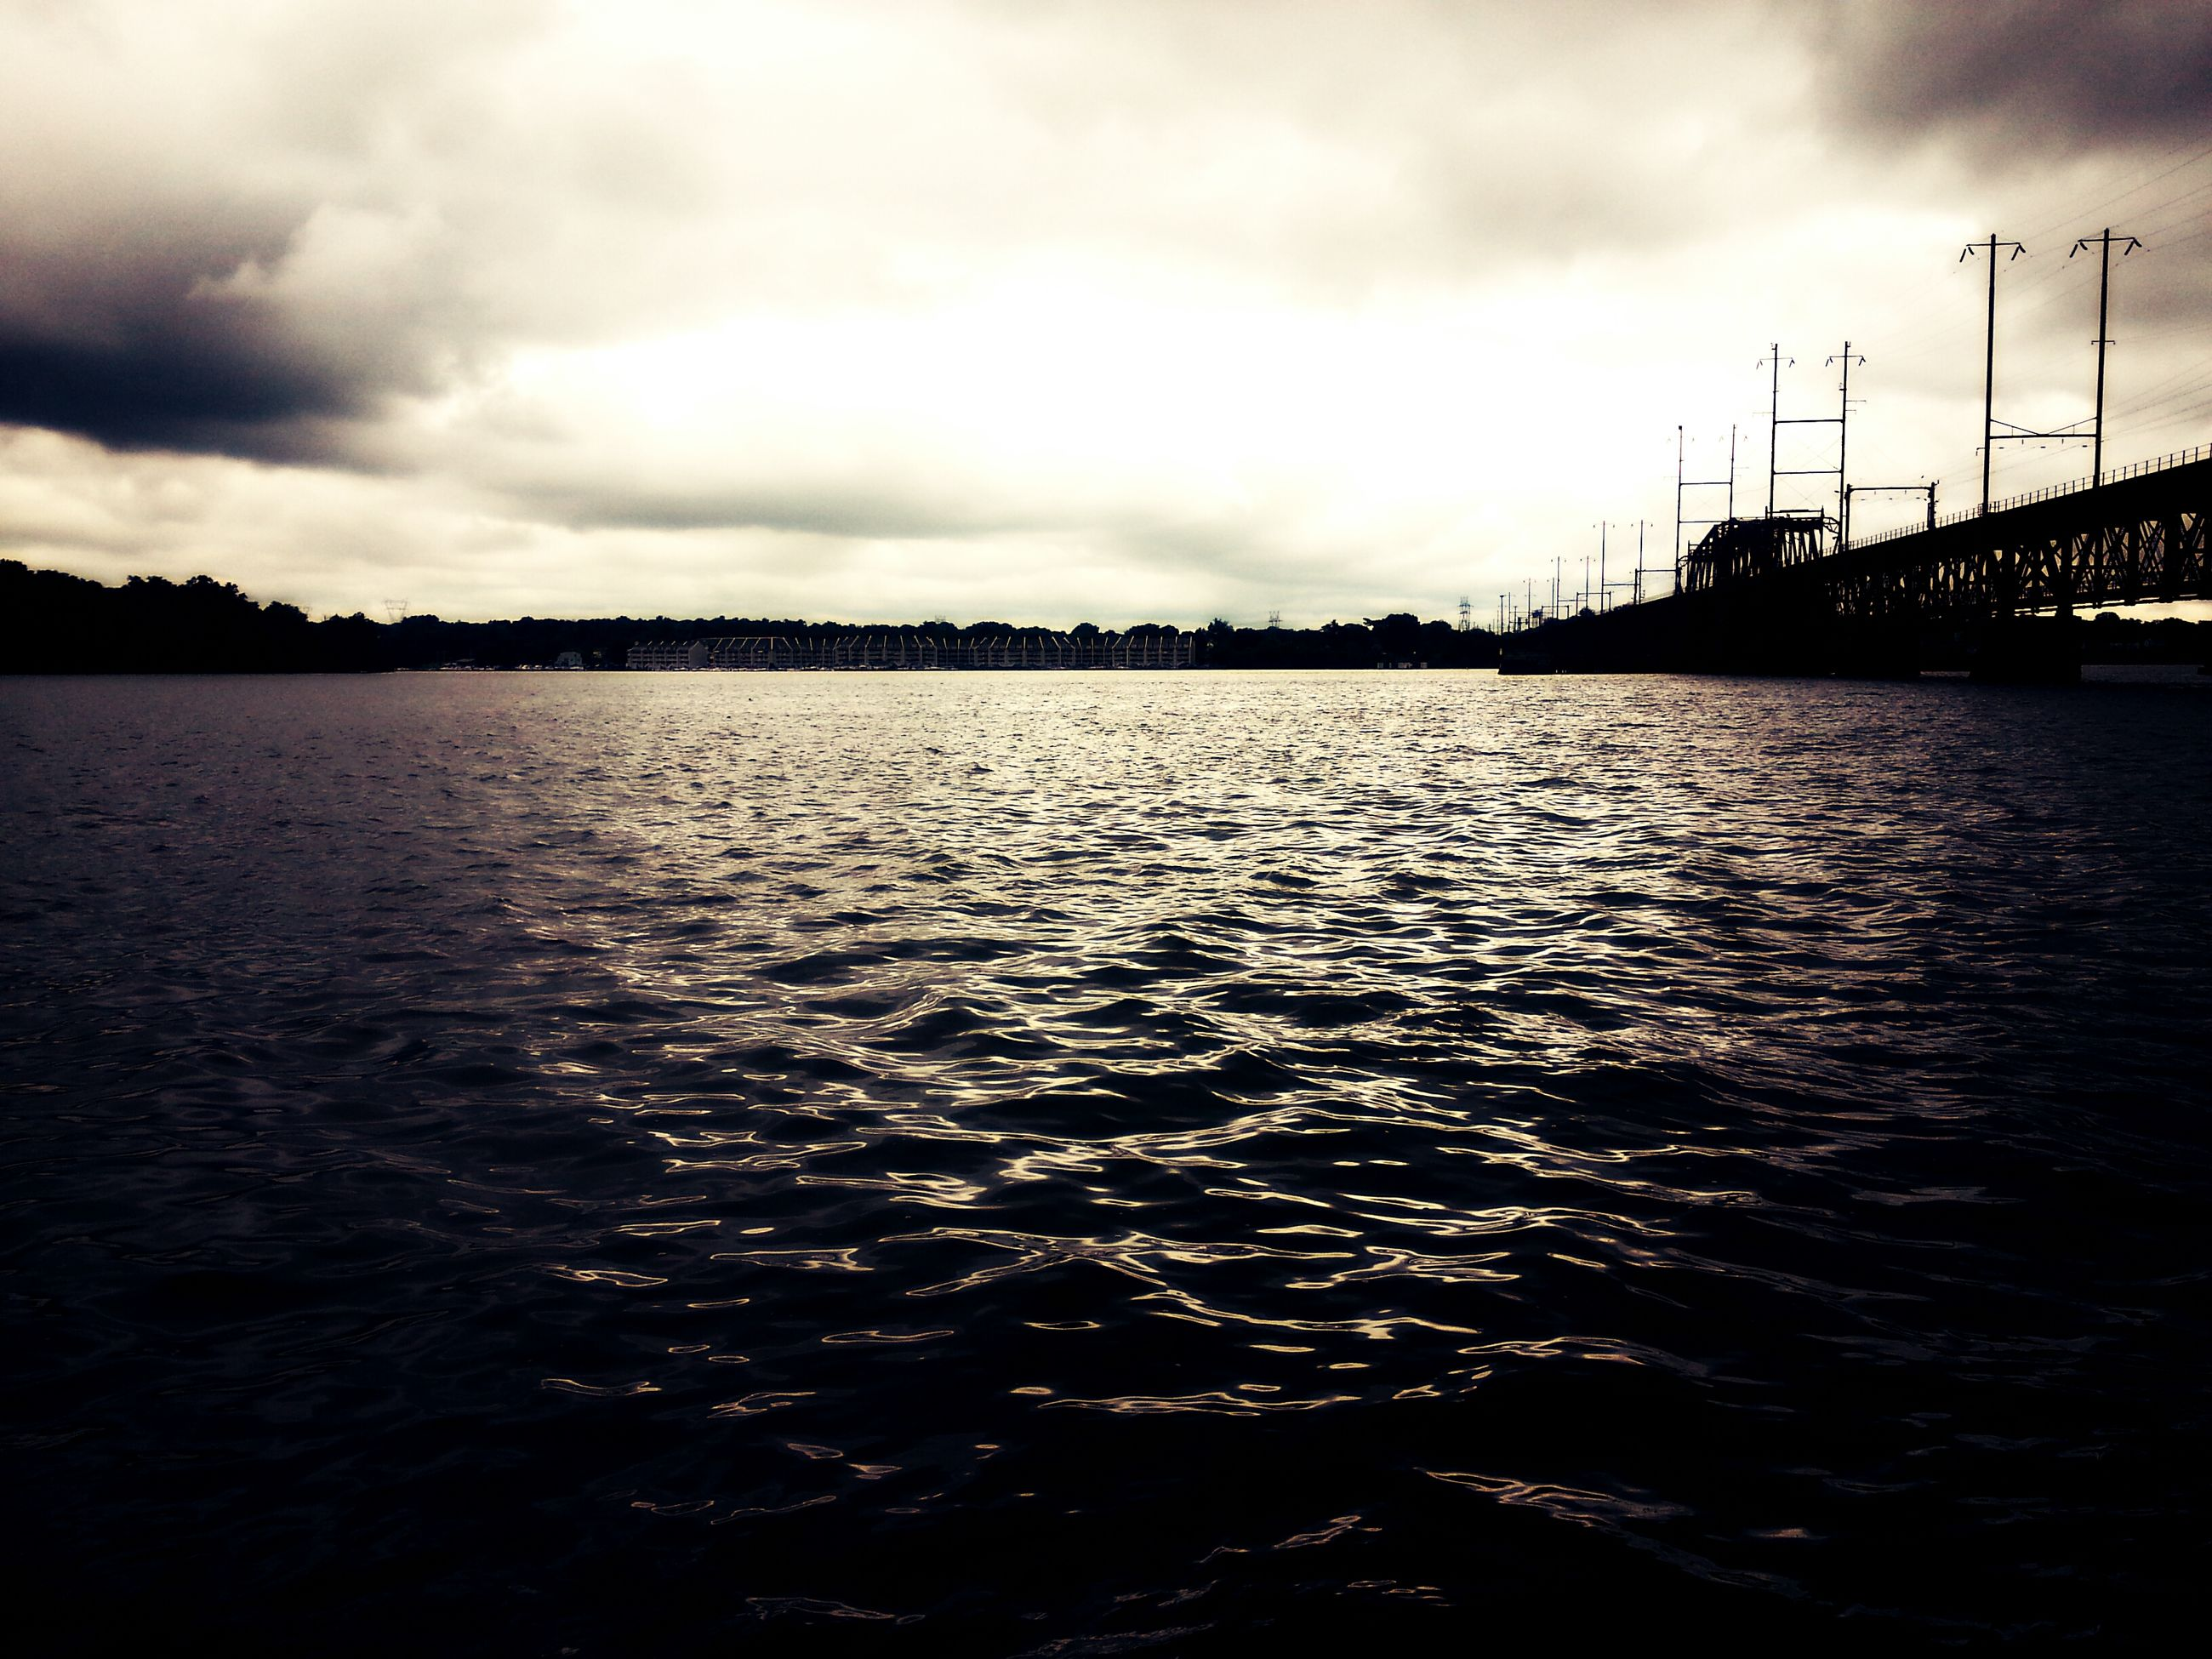 water, sky, sunset, cloud - sky, waterfront, sea, built structure, silhouette, cloudy, scenics, dusk, tranquil scene, cloud, tranquility, nature, architecture, beauty in nature, reflection, rippled, pier